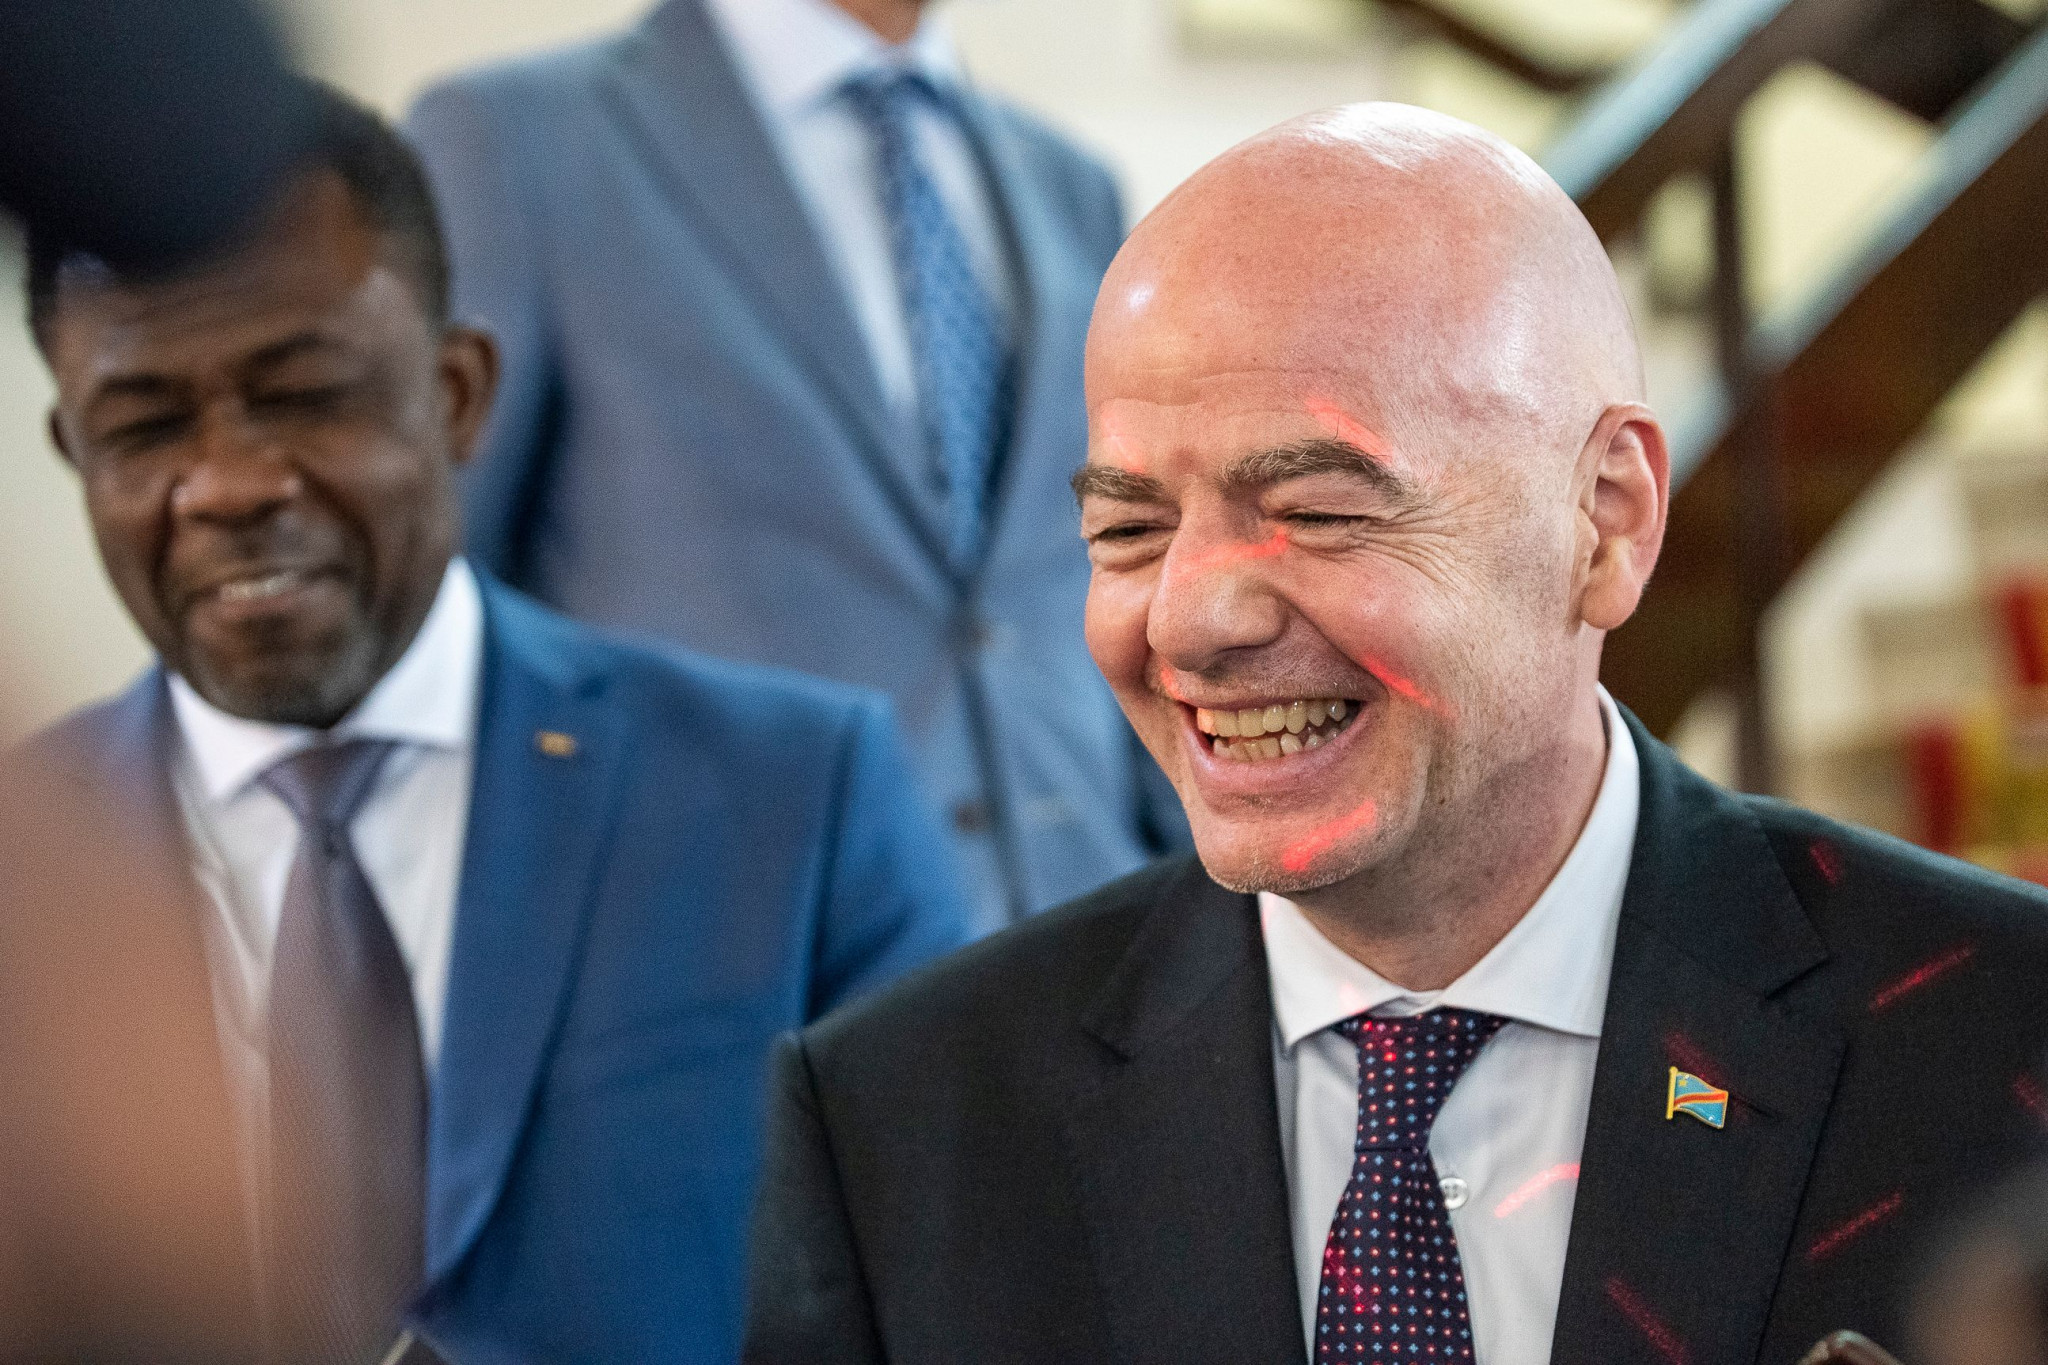 Infantino repeats call for unity as COSAFA pledges to back Motsepe for CAF Presidency